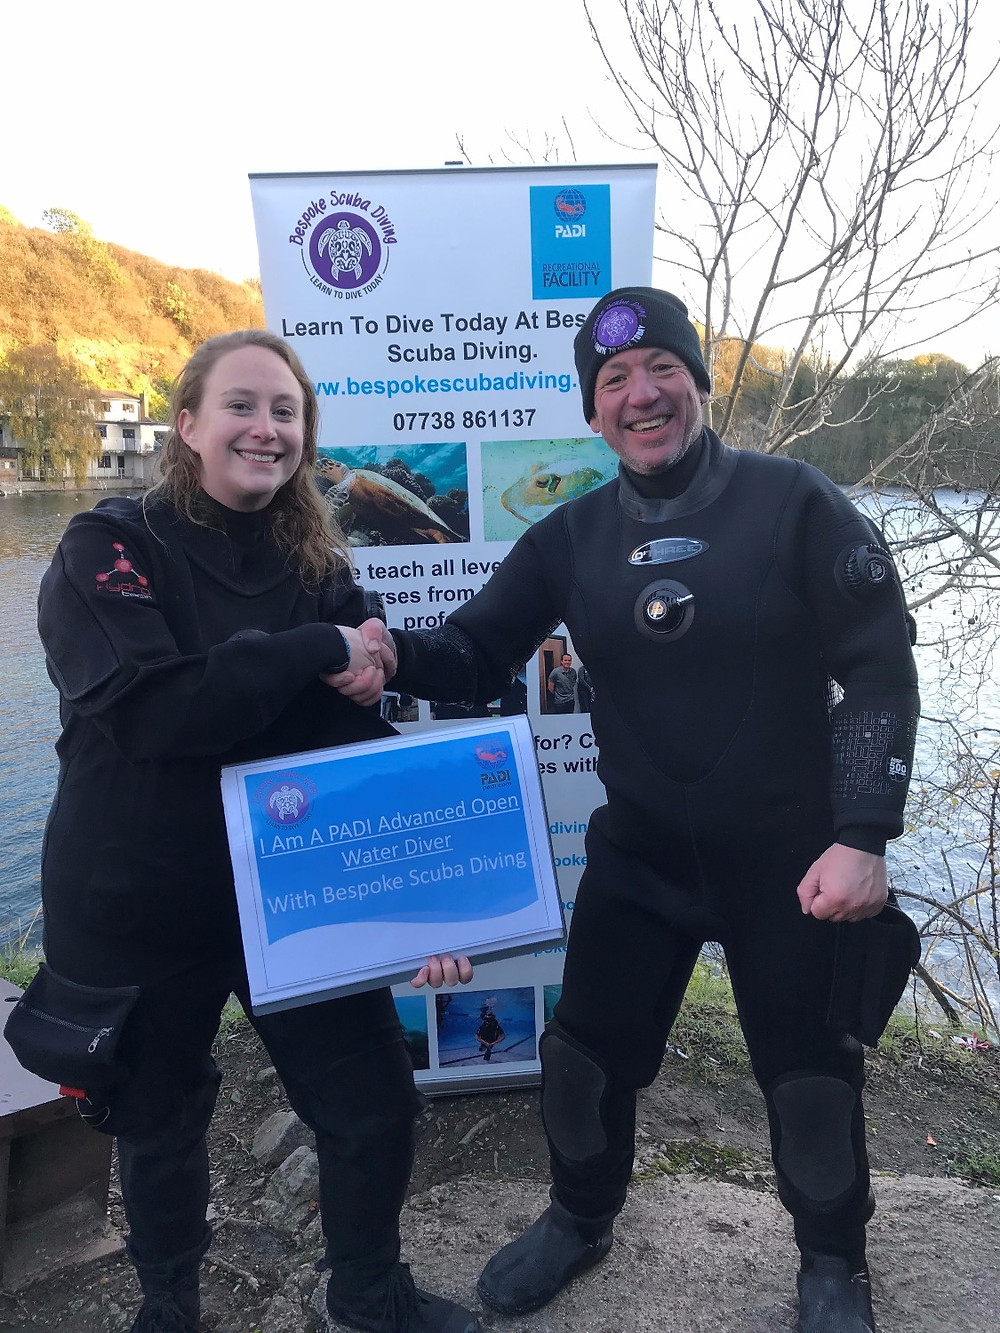 Loretta being congratulated on completing her PADI Advanced Open Water Course